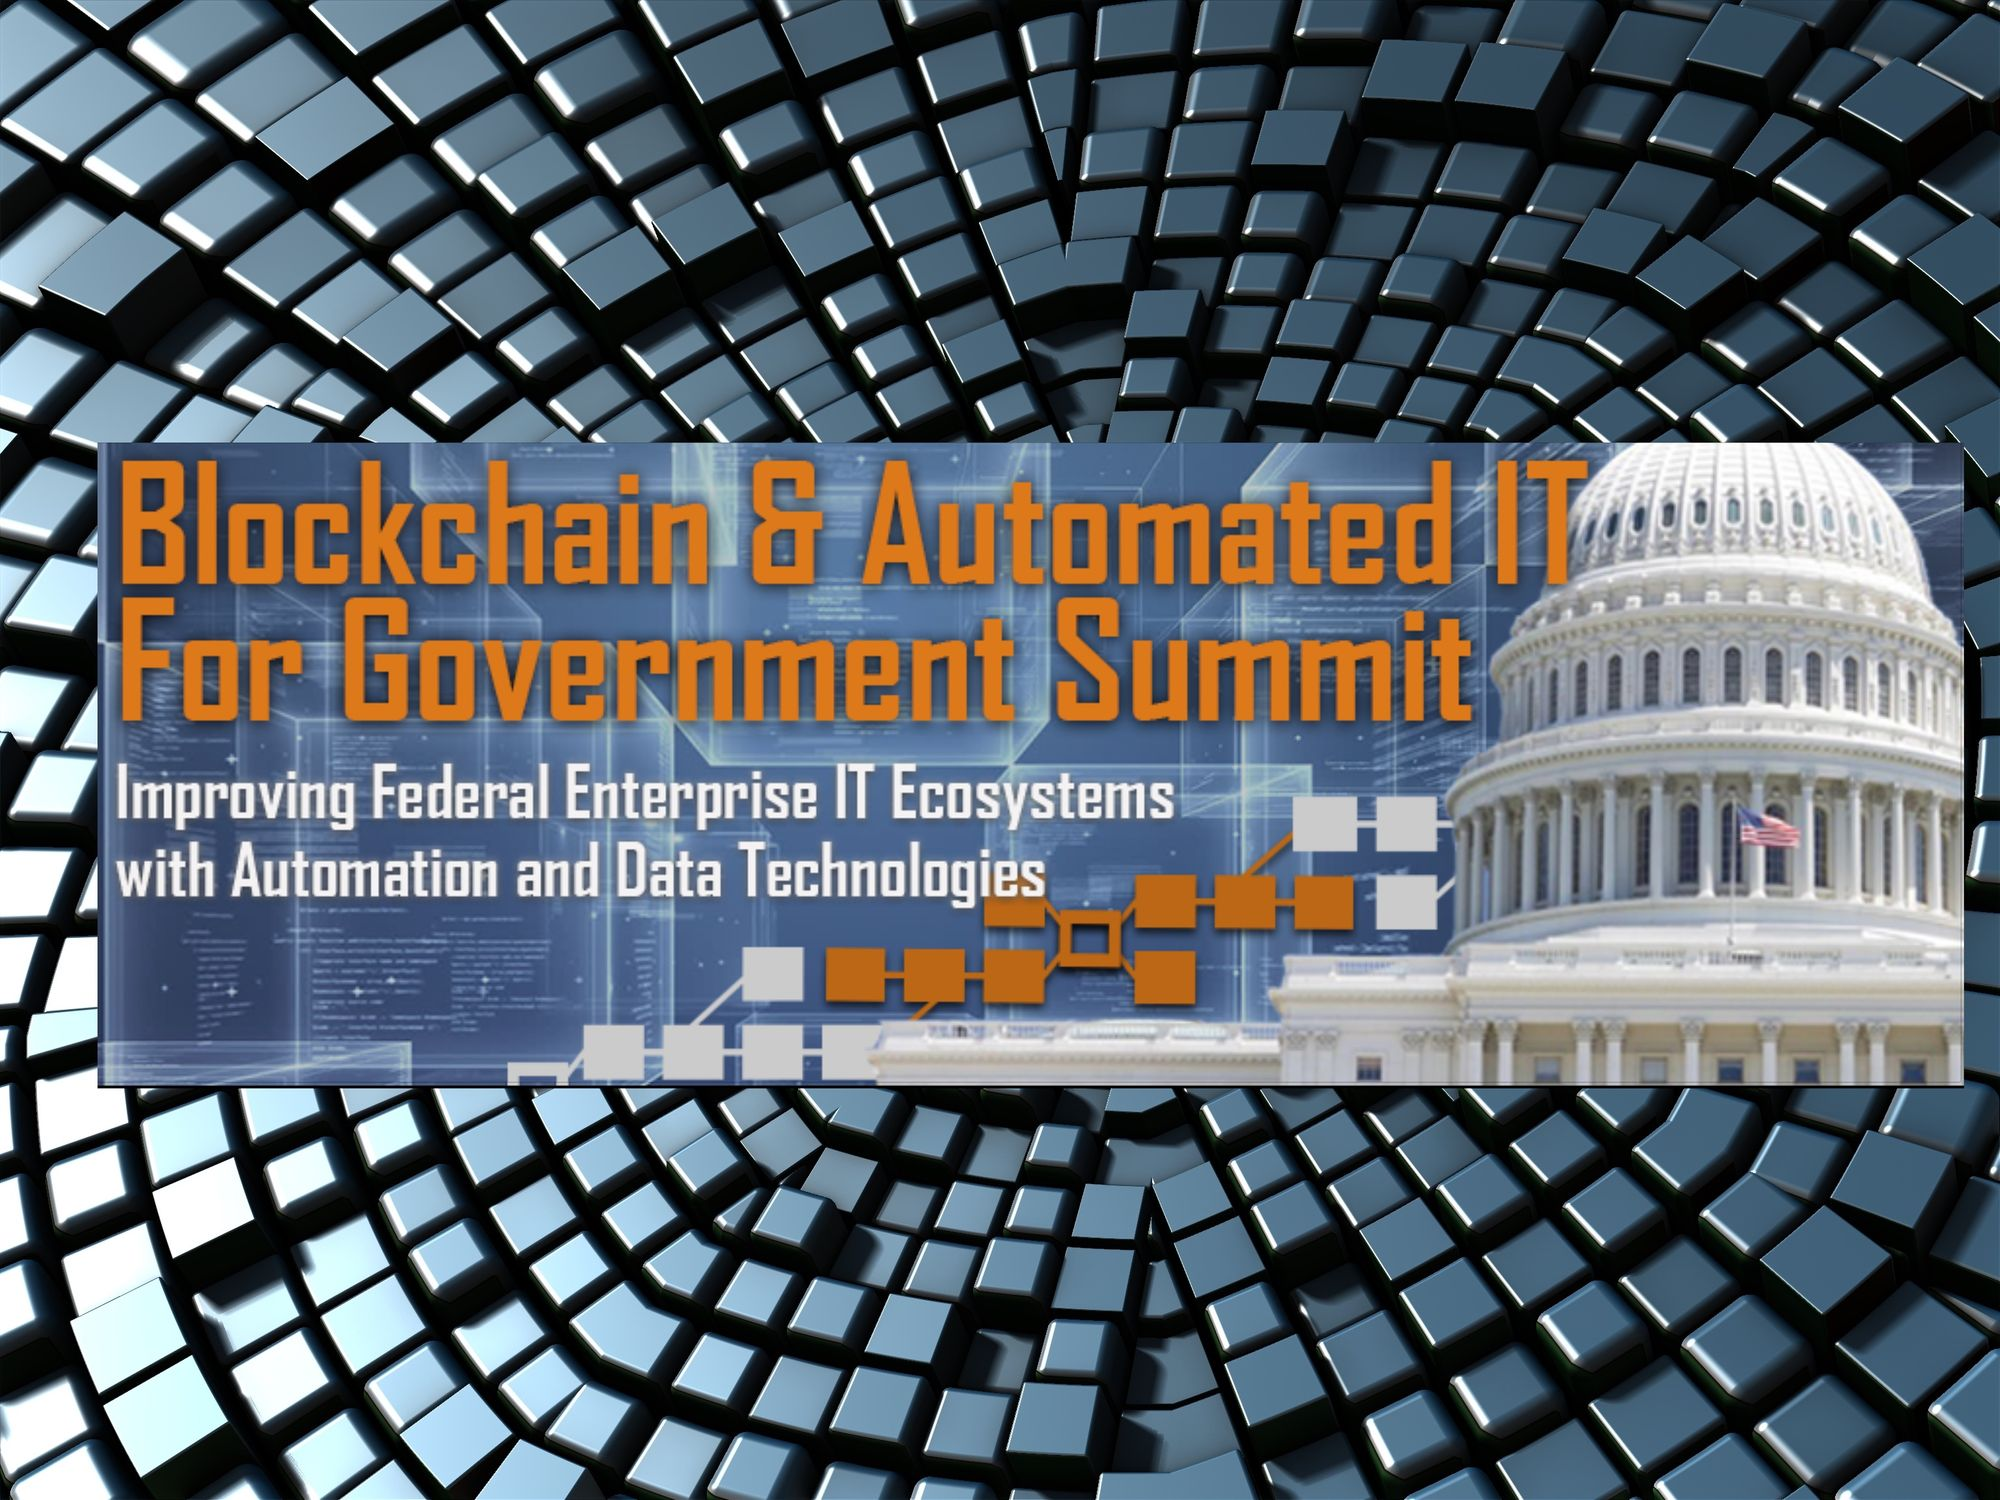 Defense Strategies Institute Presents Blockchain & Automated IT For Government Summit, April 24-25 2019, Washington DC